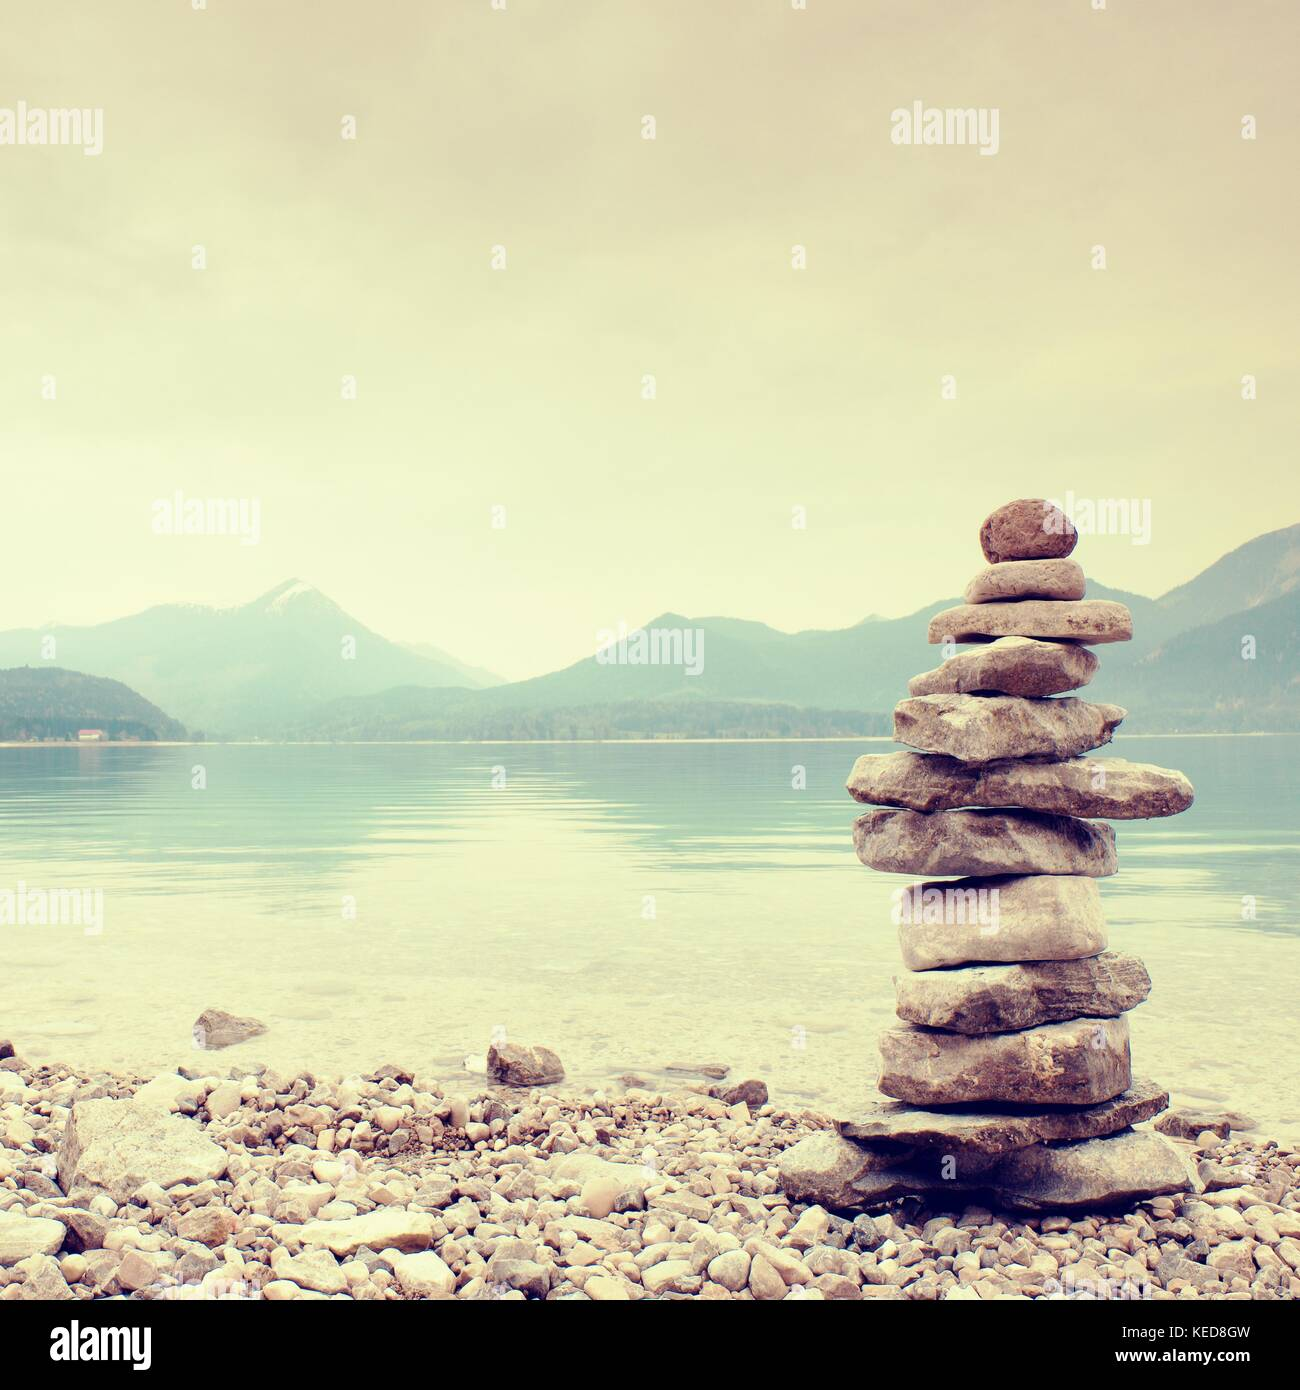 Balanced stone pyramide for memory. Stony shore of blue water of mountain lake with level mirror. Children built - Stock Image